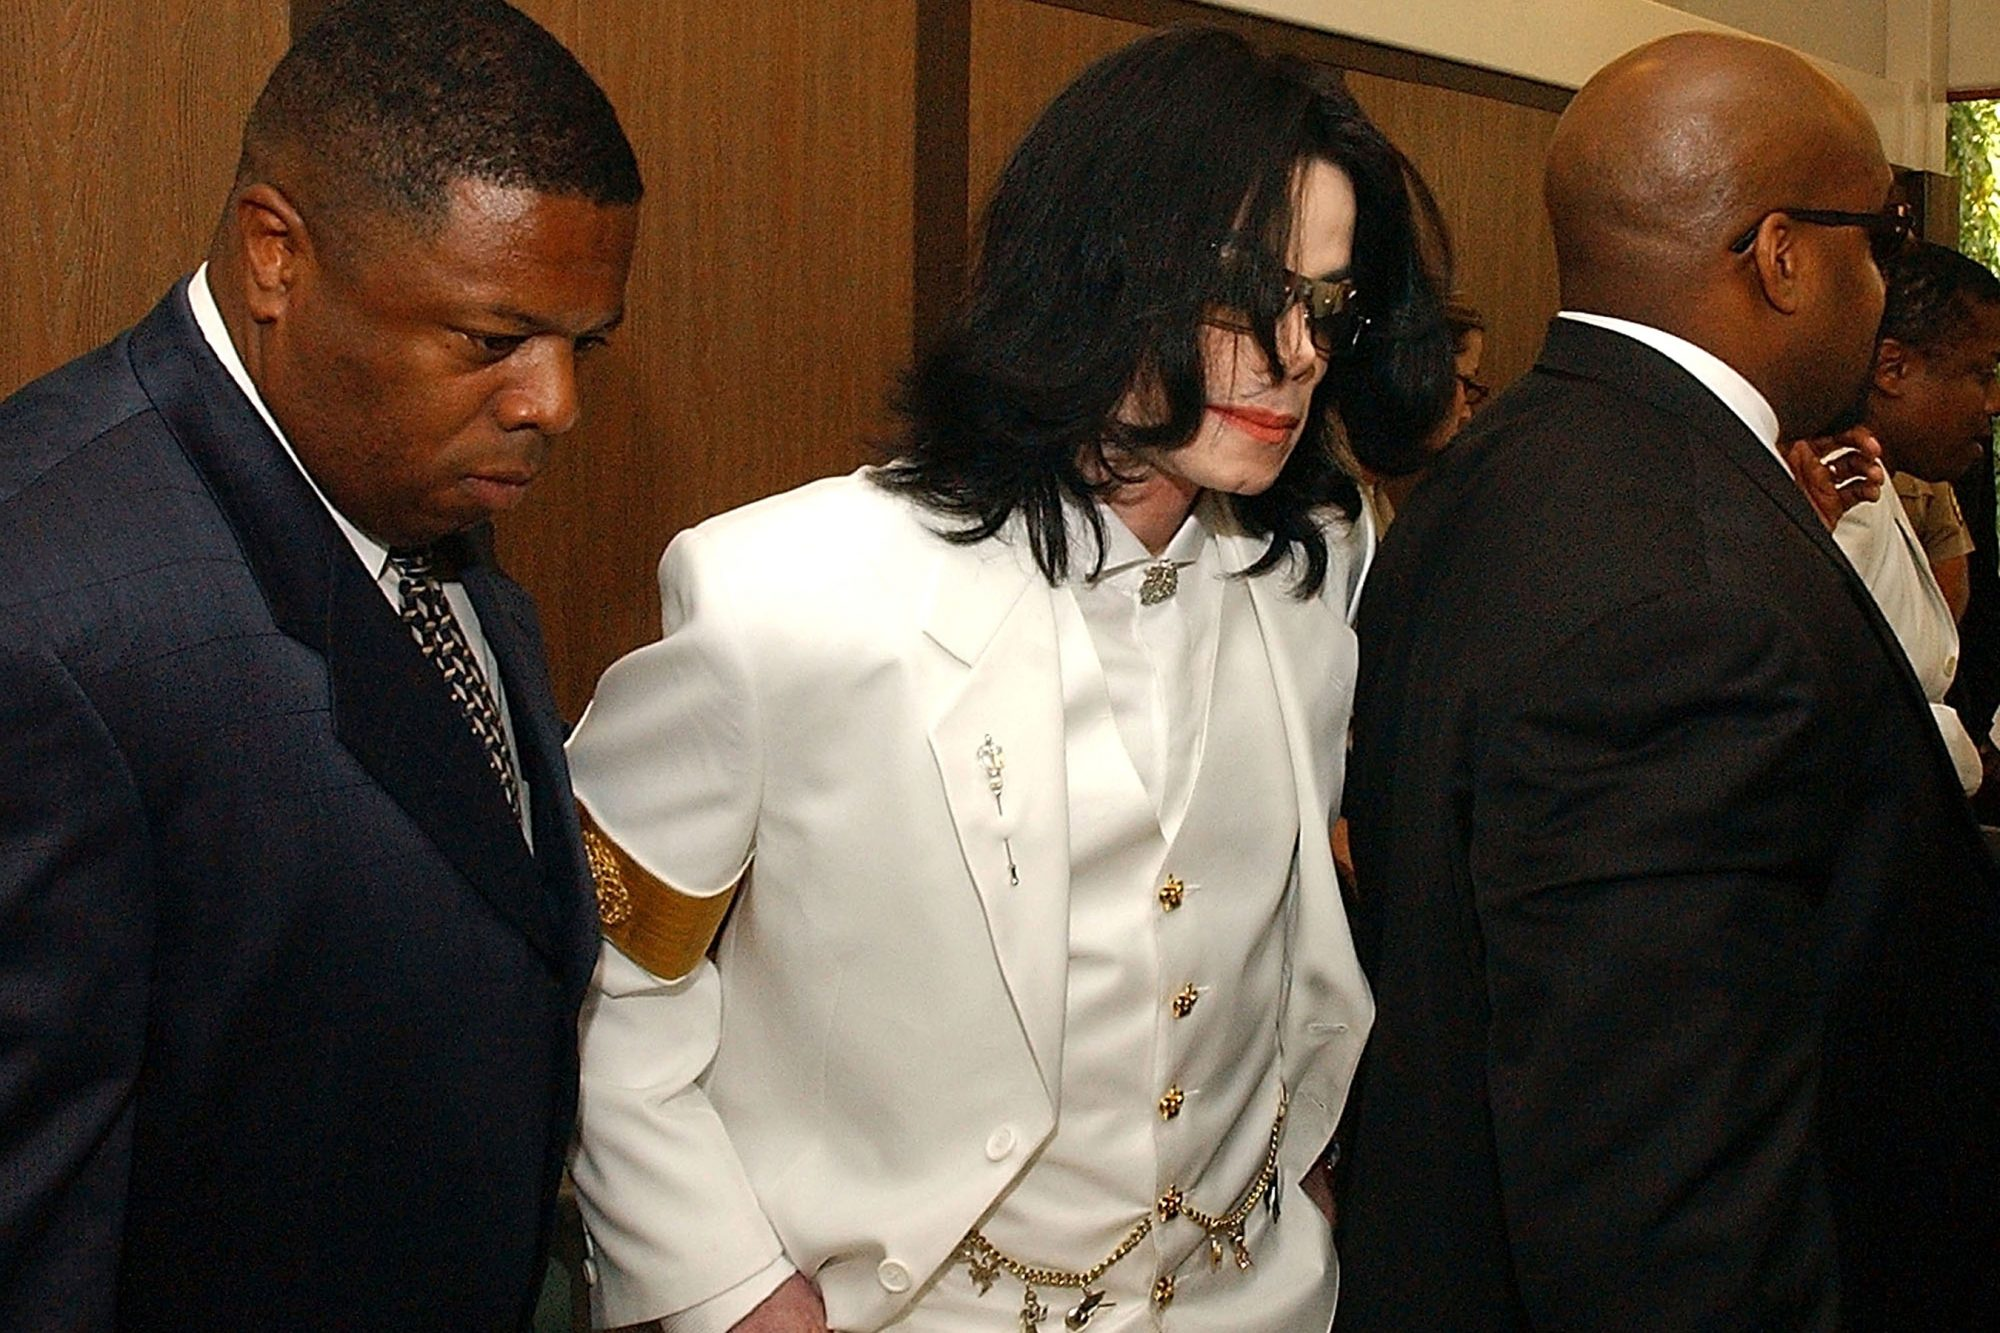 Evidentiary Hearing In The Michael Jackson Case